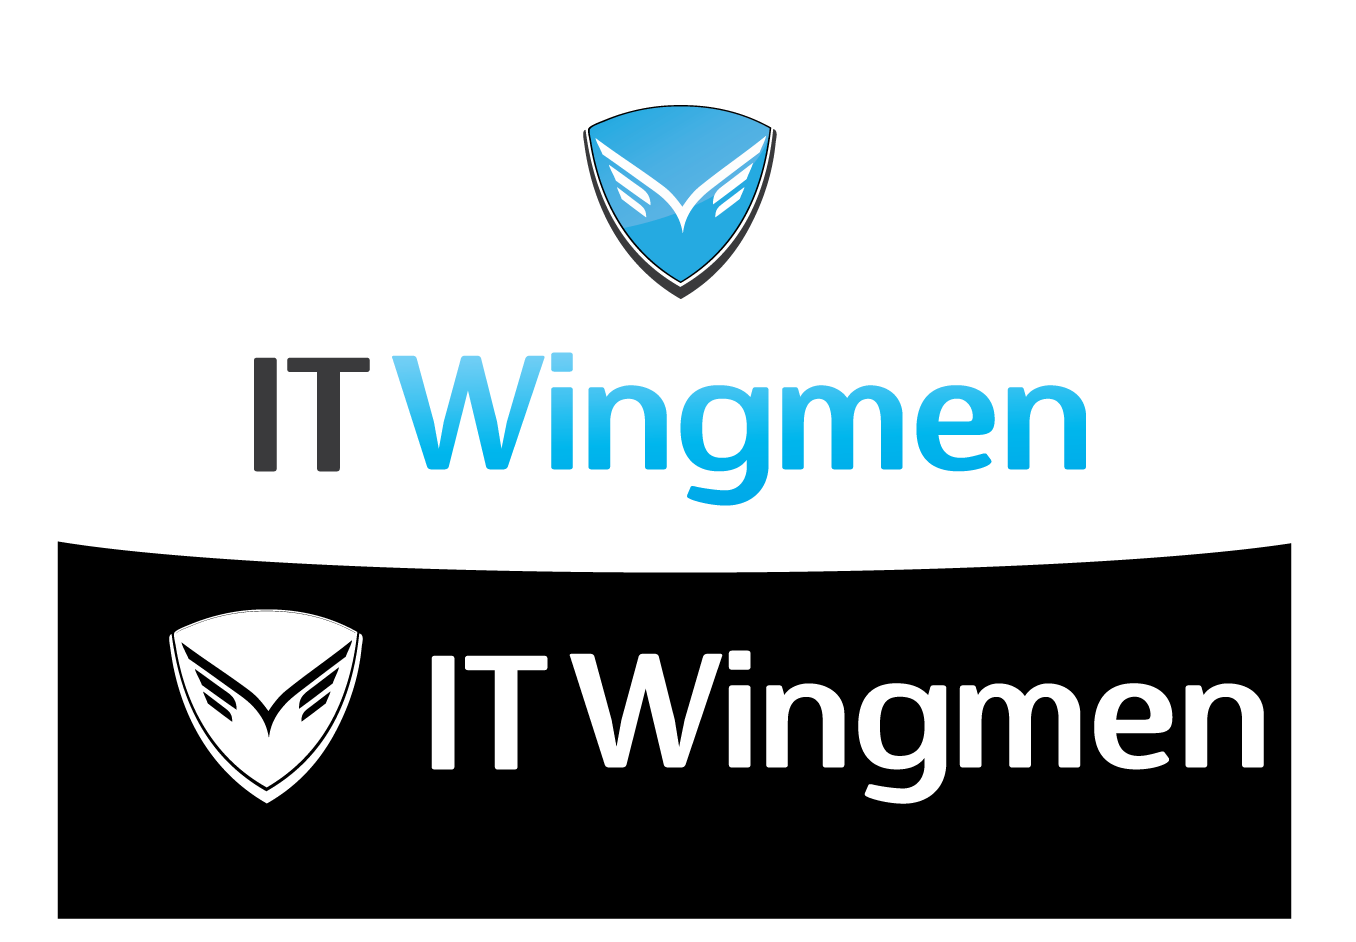 Logo Design by 354studio - Entry No. 40 in the Logo Design Contest New Logo Design for IT Wingmen.